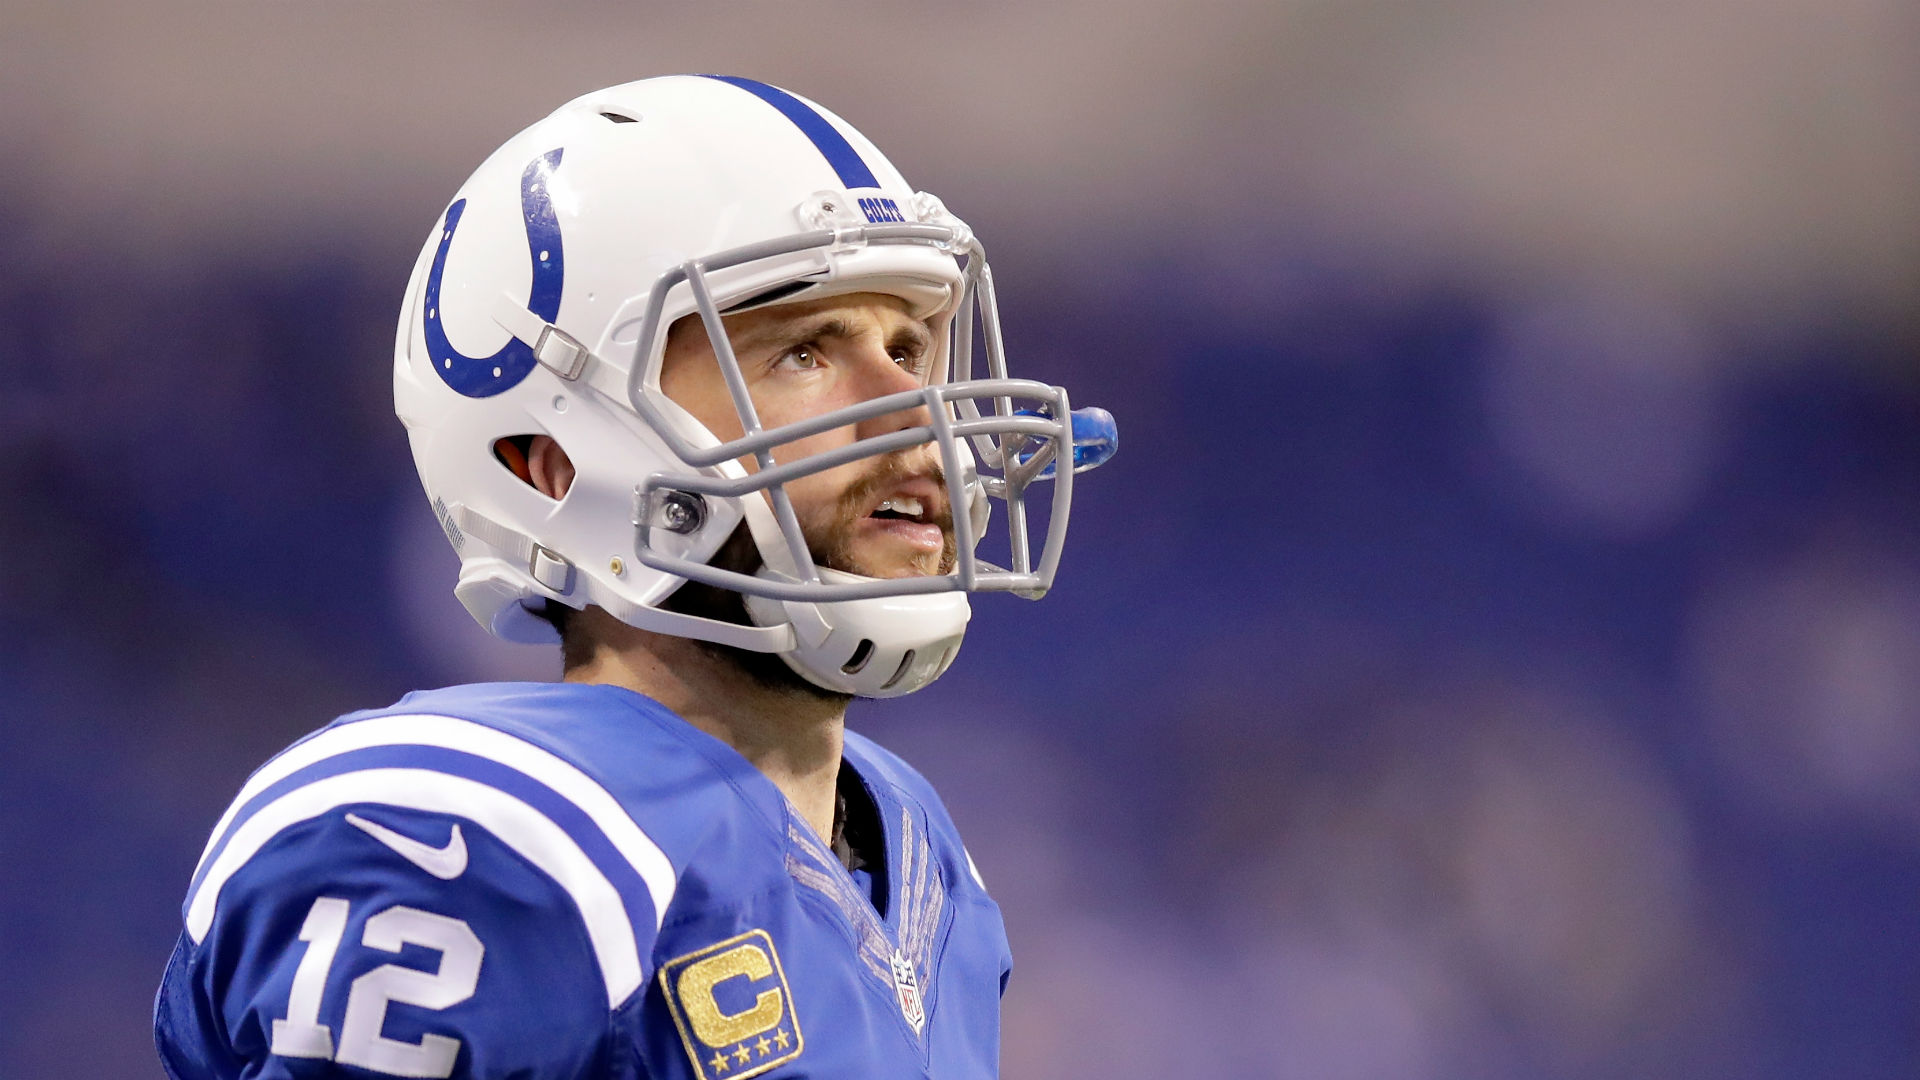 Why did Andrew Luck retire? Colts QB's decision to end NFL career, explained